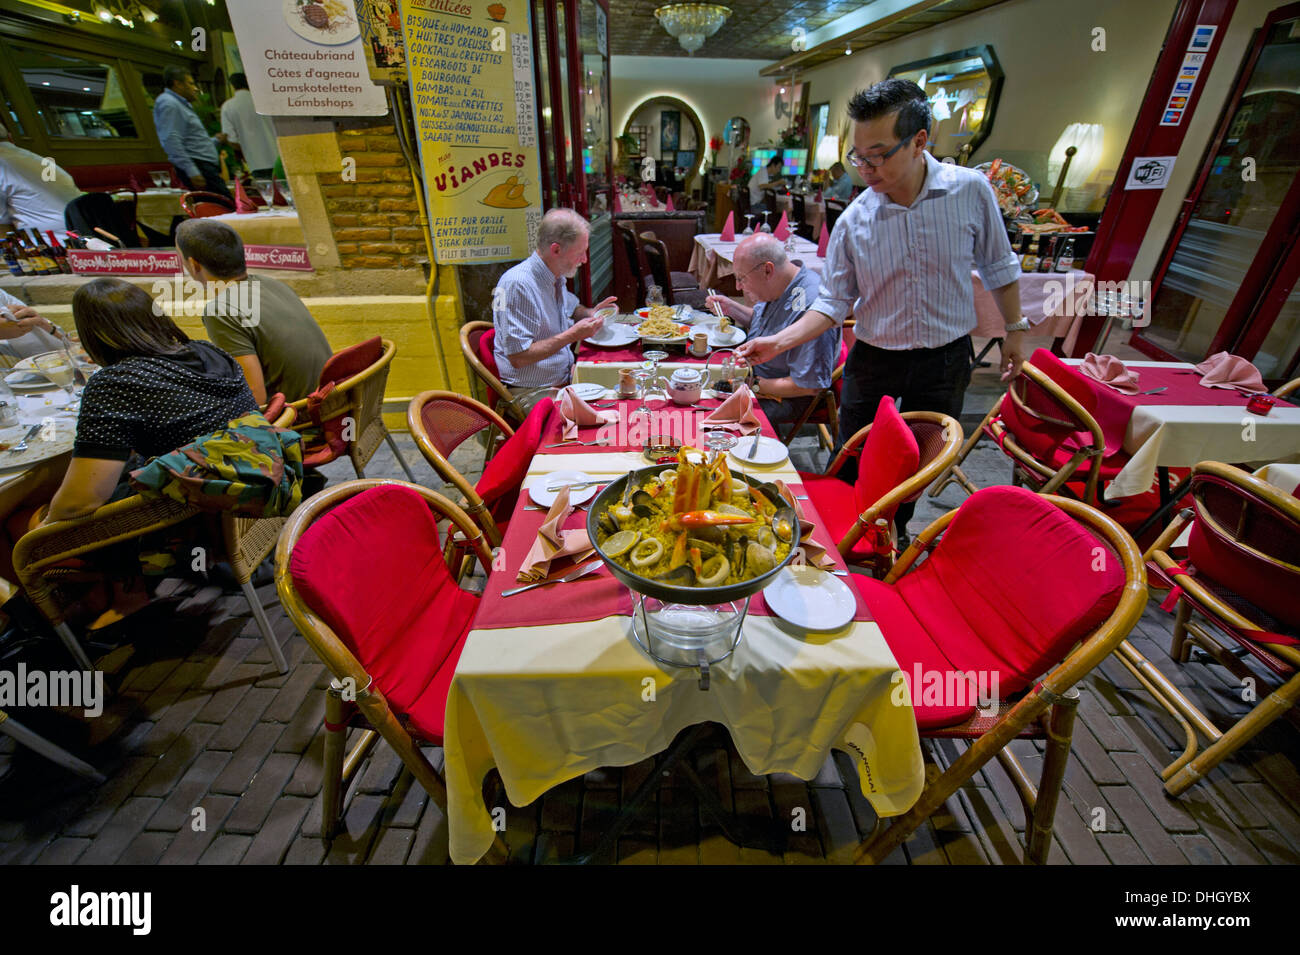 Waiter Restaurant Brussels High Resolution Stock Photography And Images Alamy